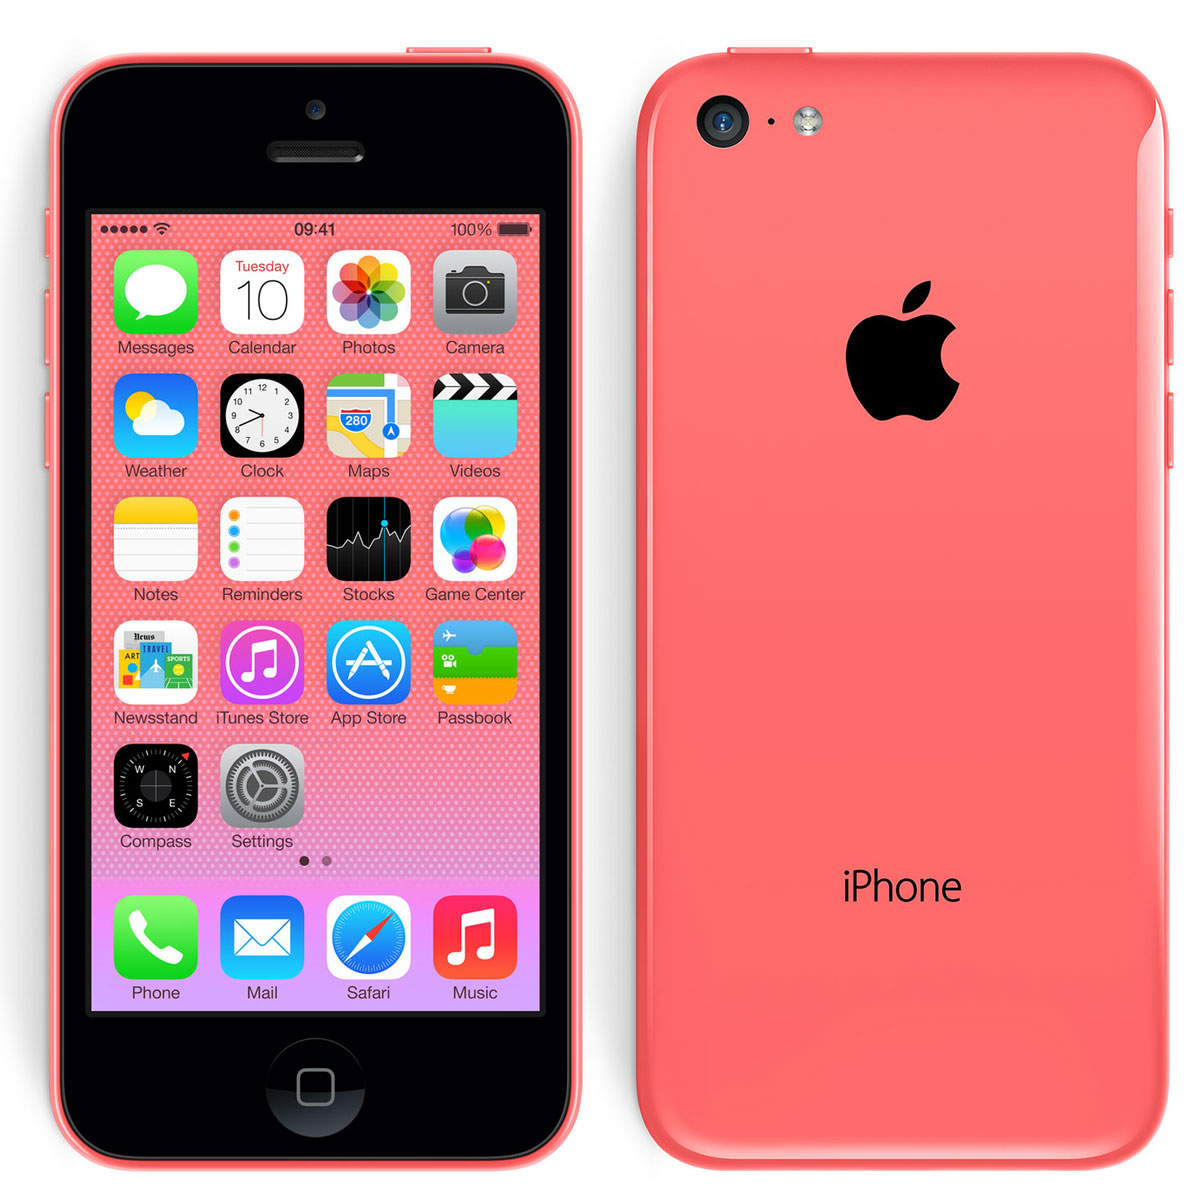 att iphone 5c apple iphone 5c 16gb quot factory unlocked quot 4g lte smartphone 1477